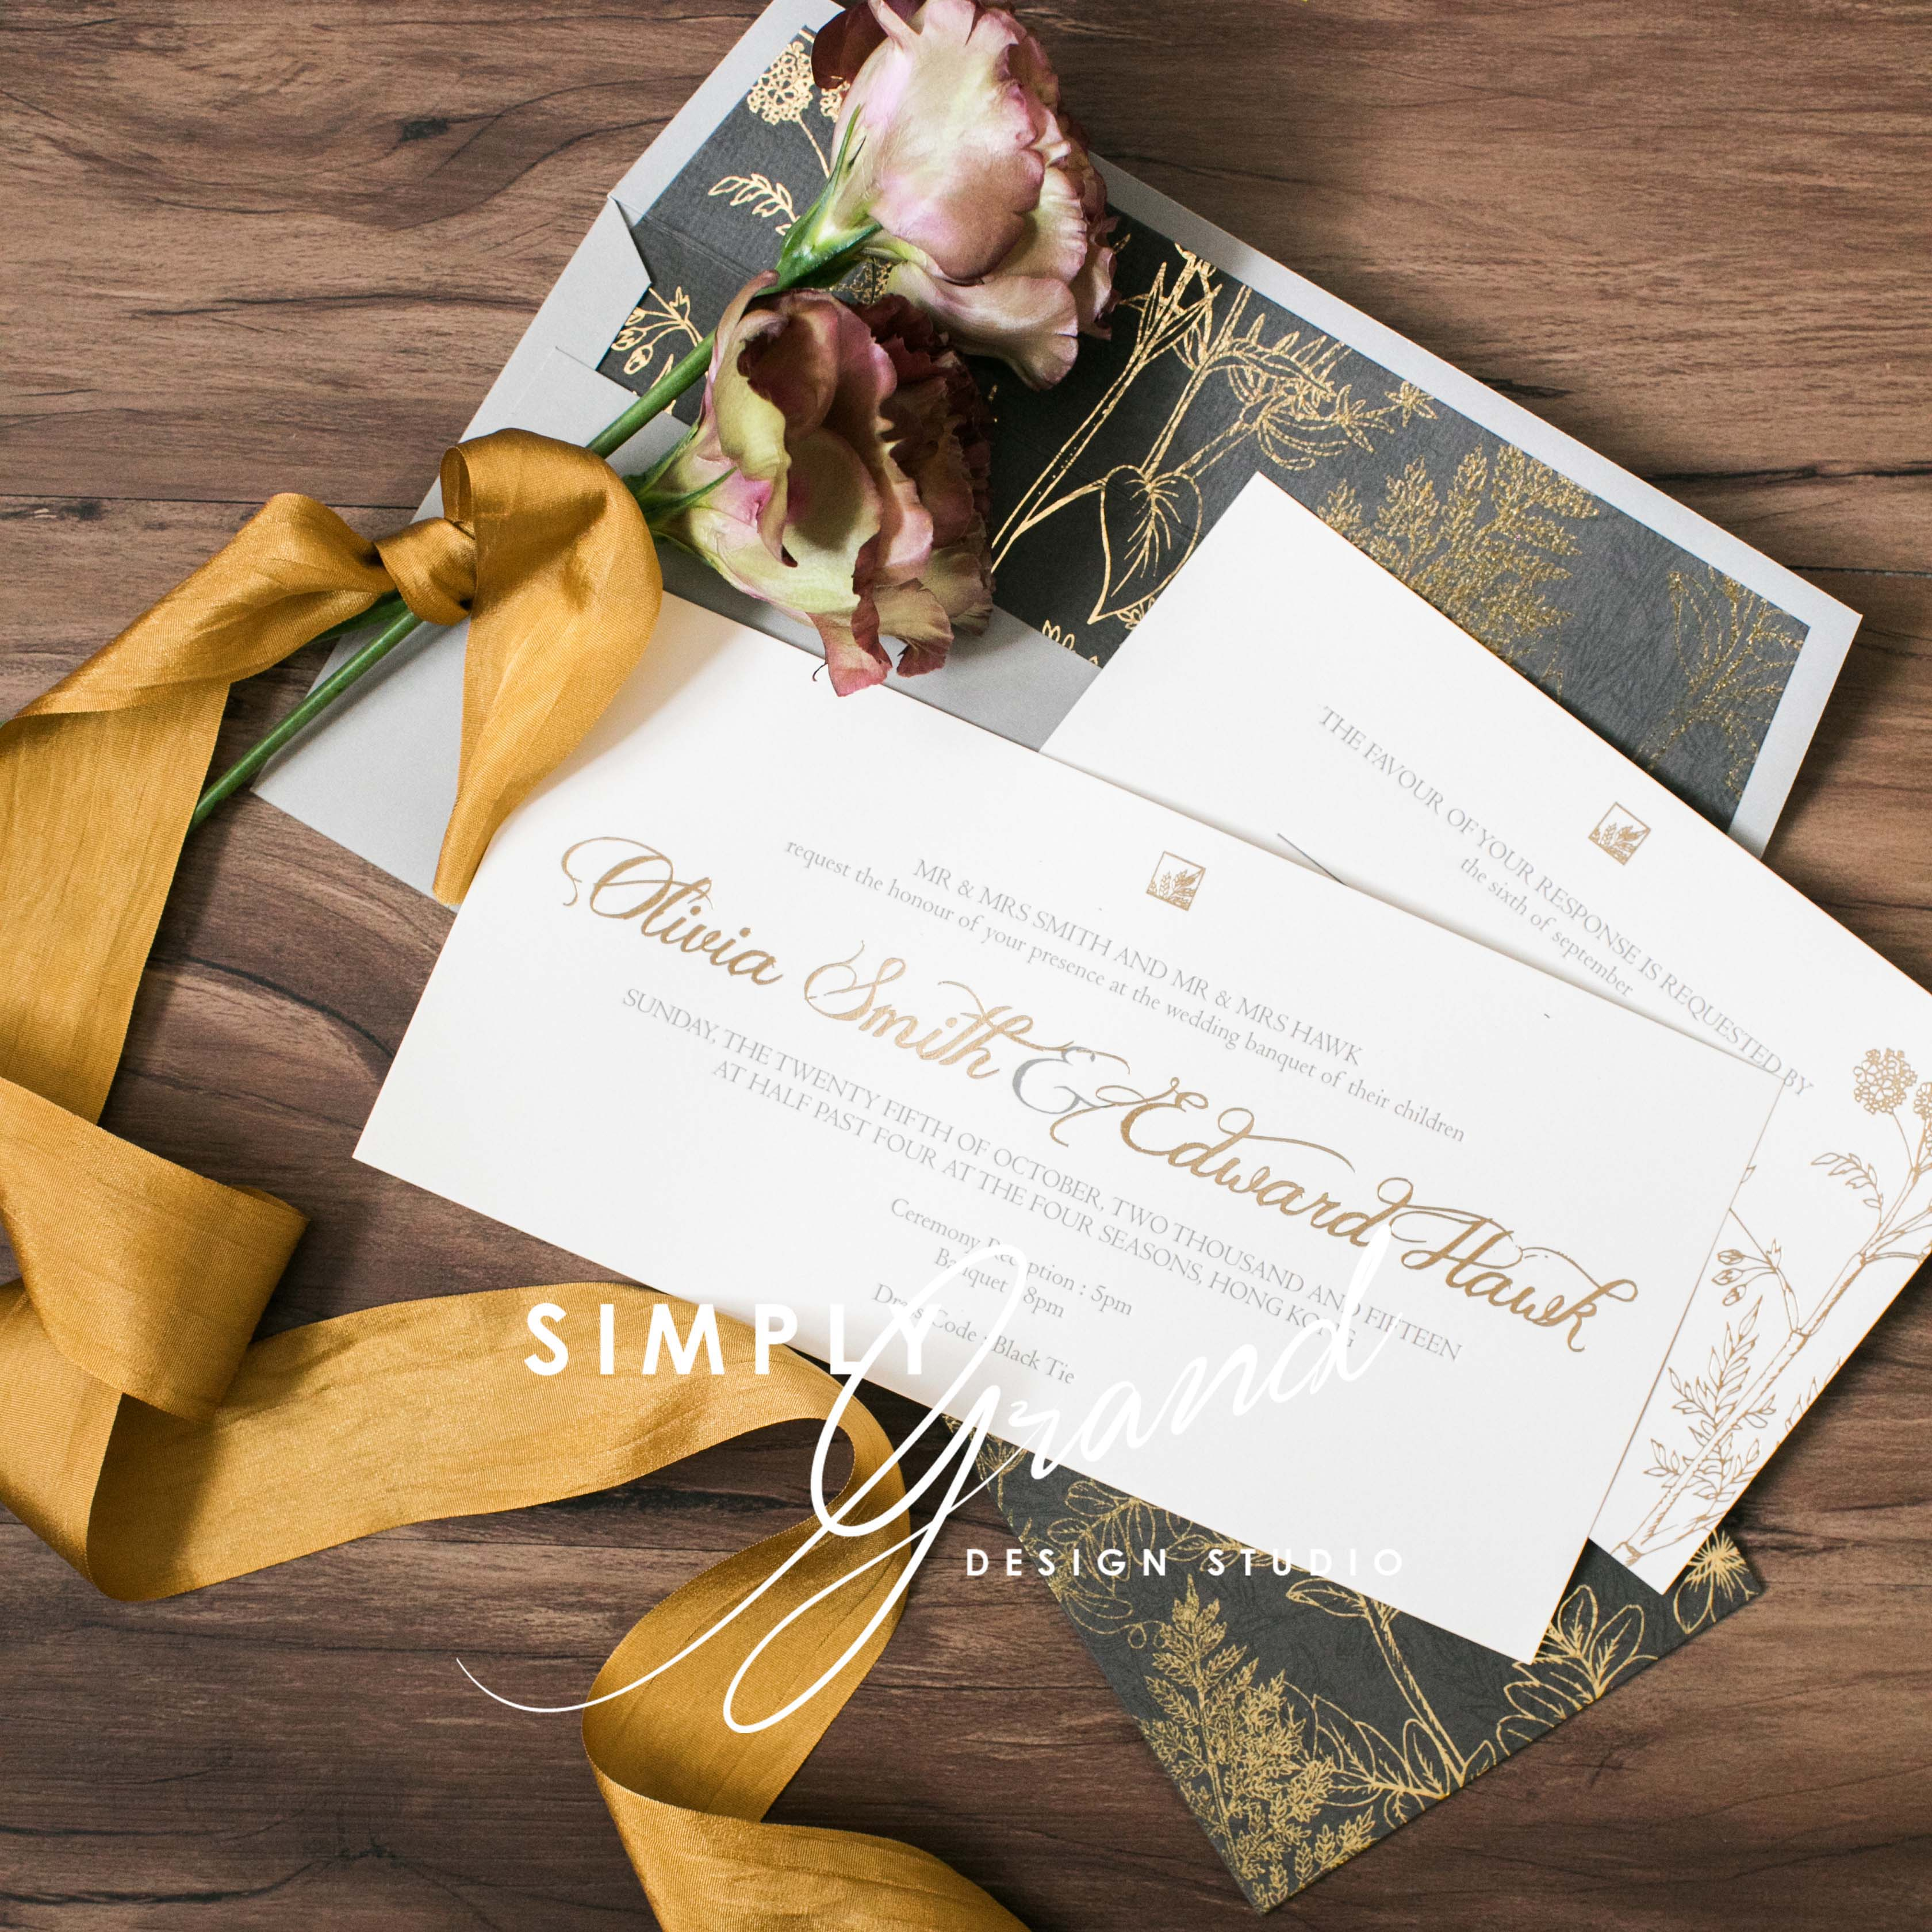 Simply_Grand_Production_Stationery_Invitation_Card_3_3